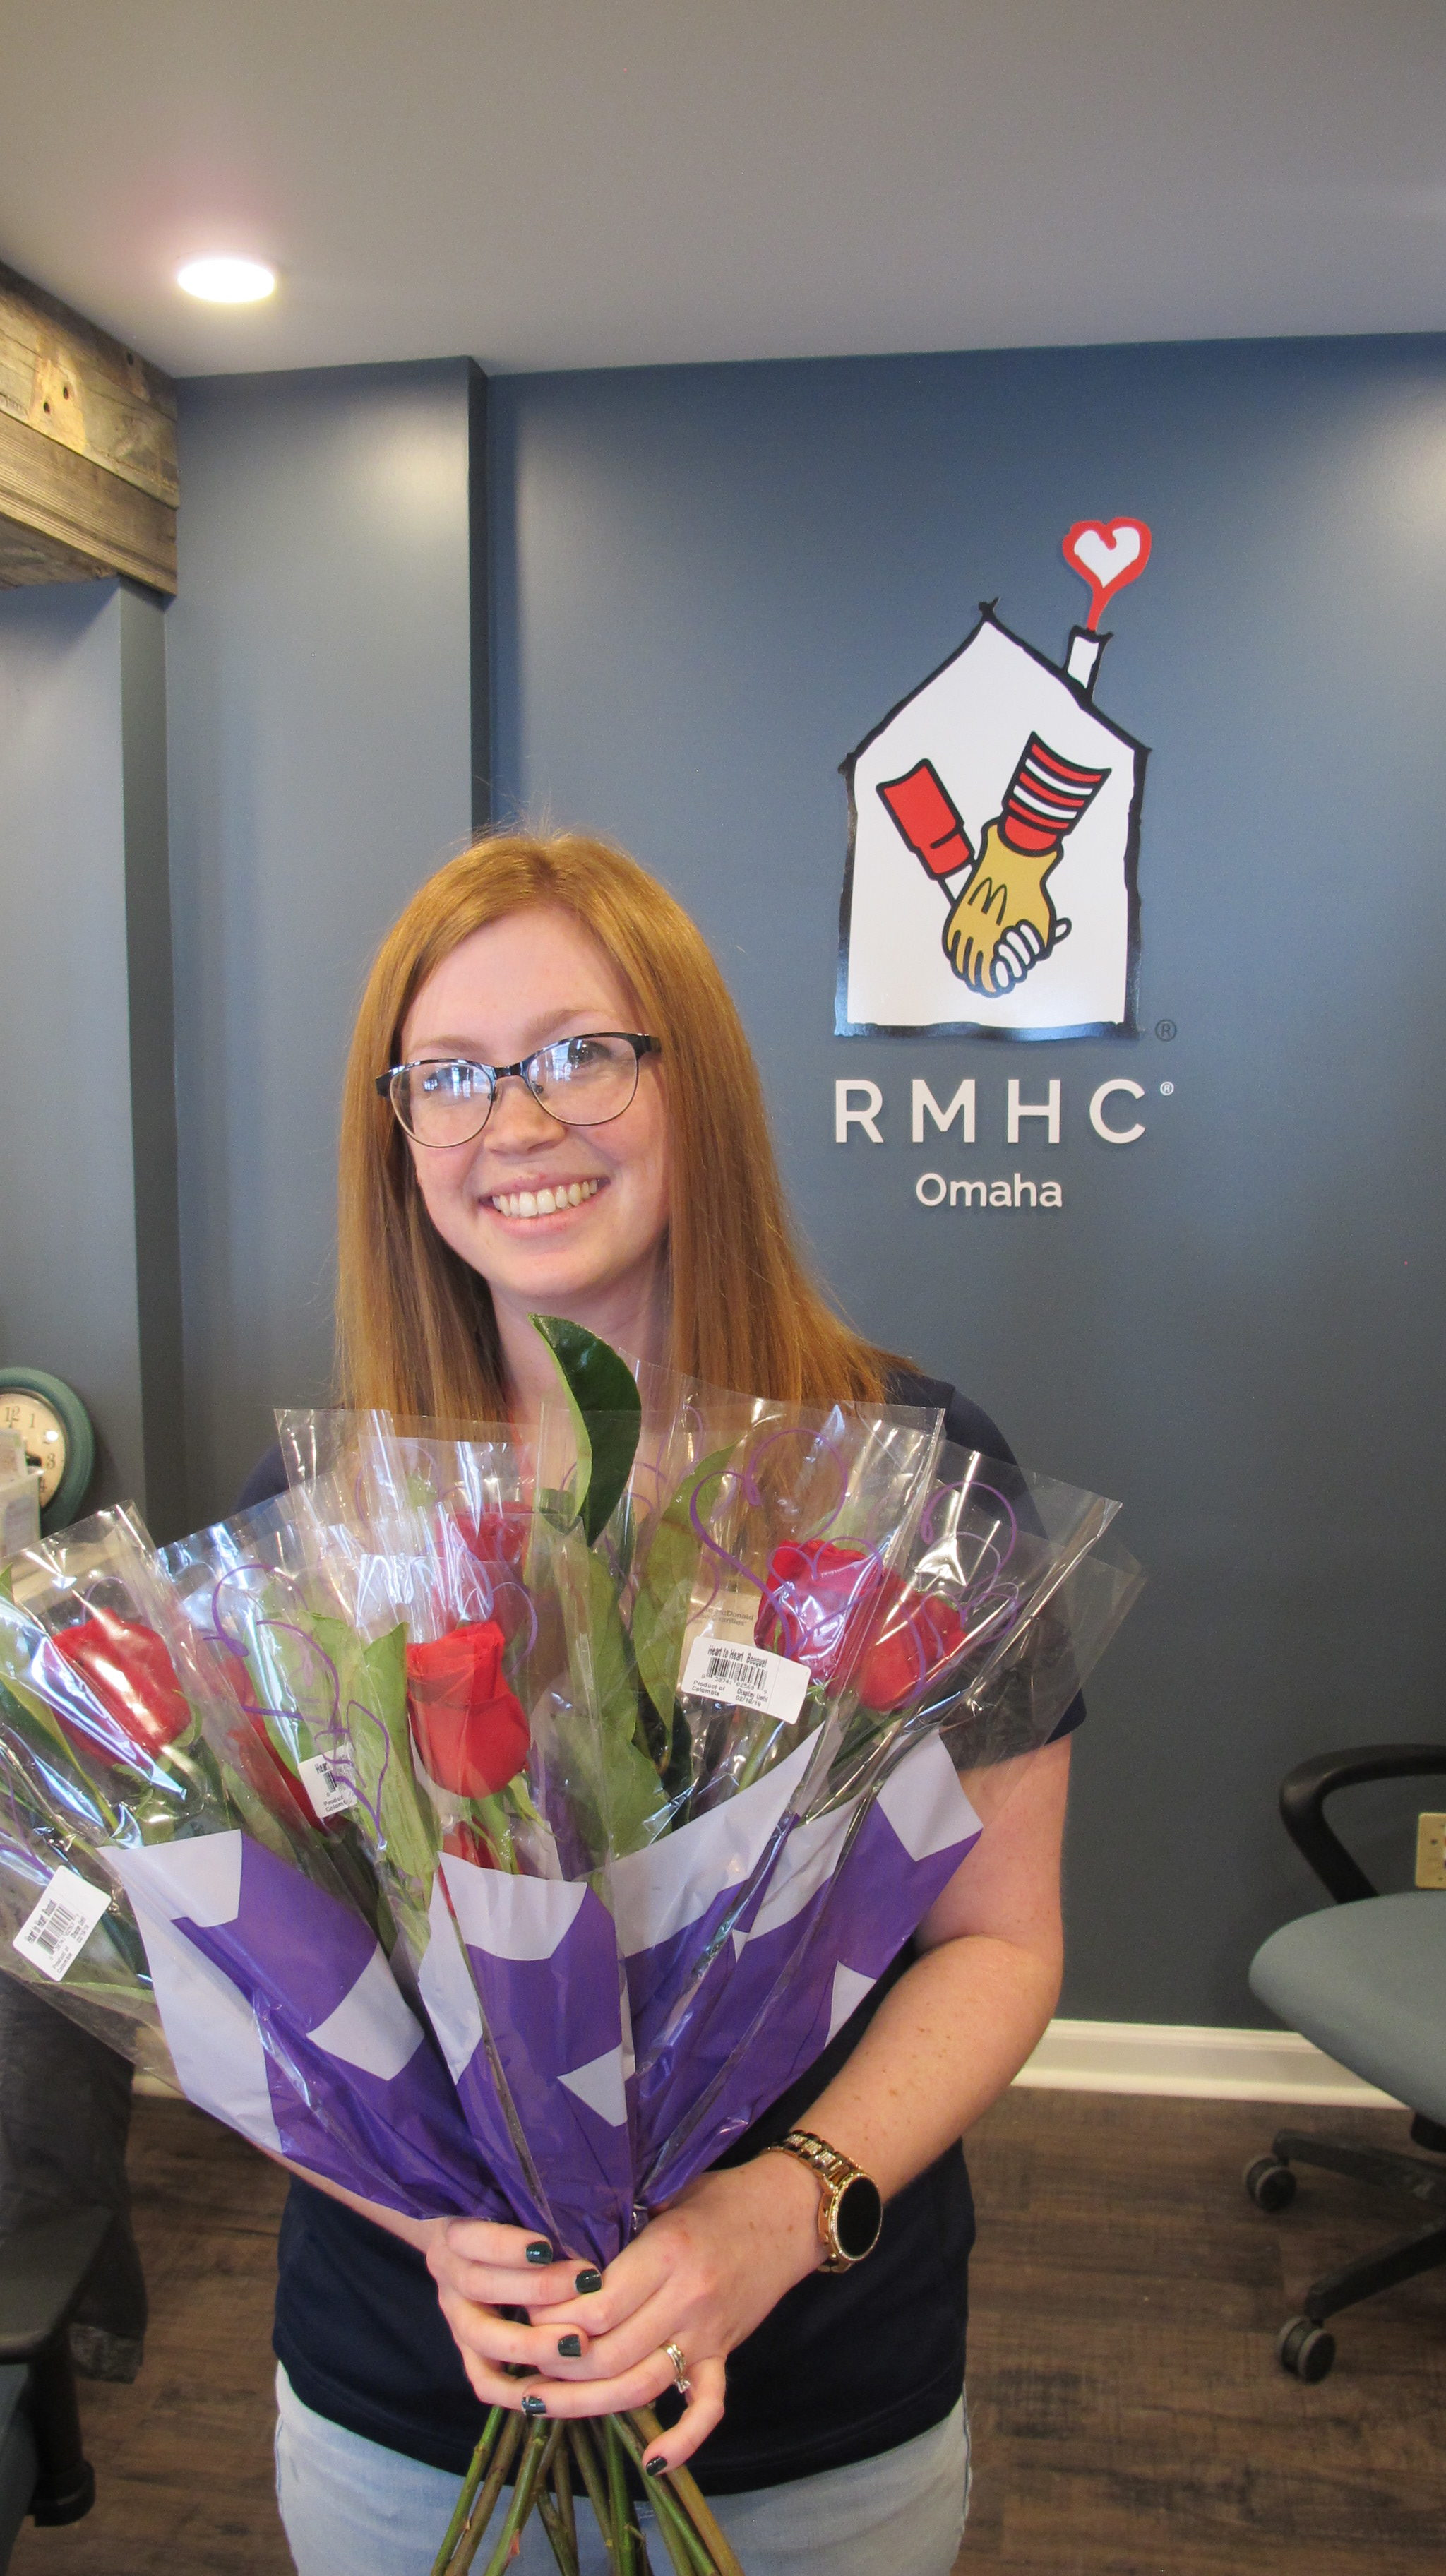 Volunteer Autumn holding roses